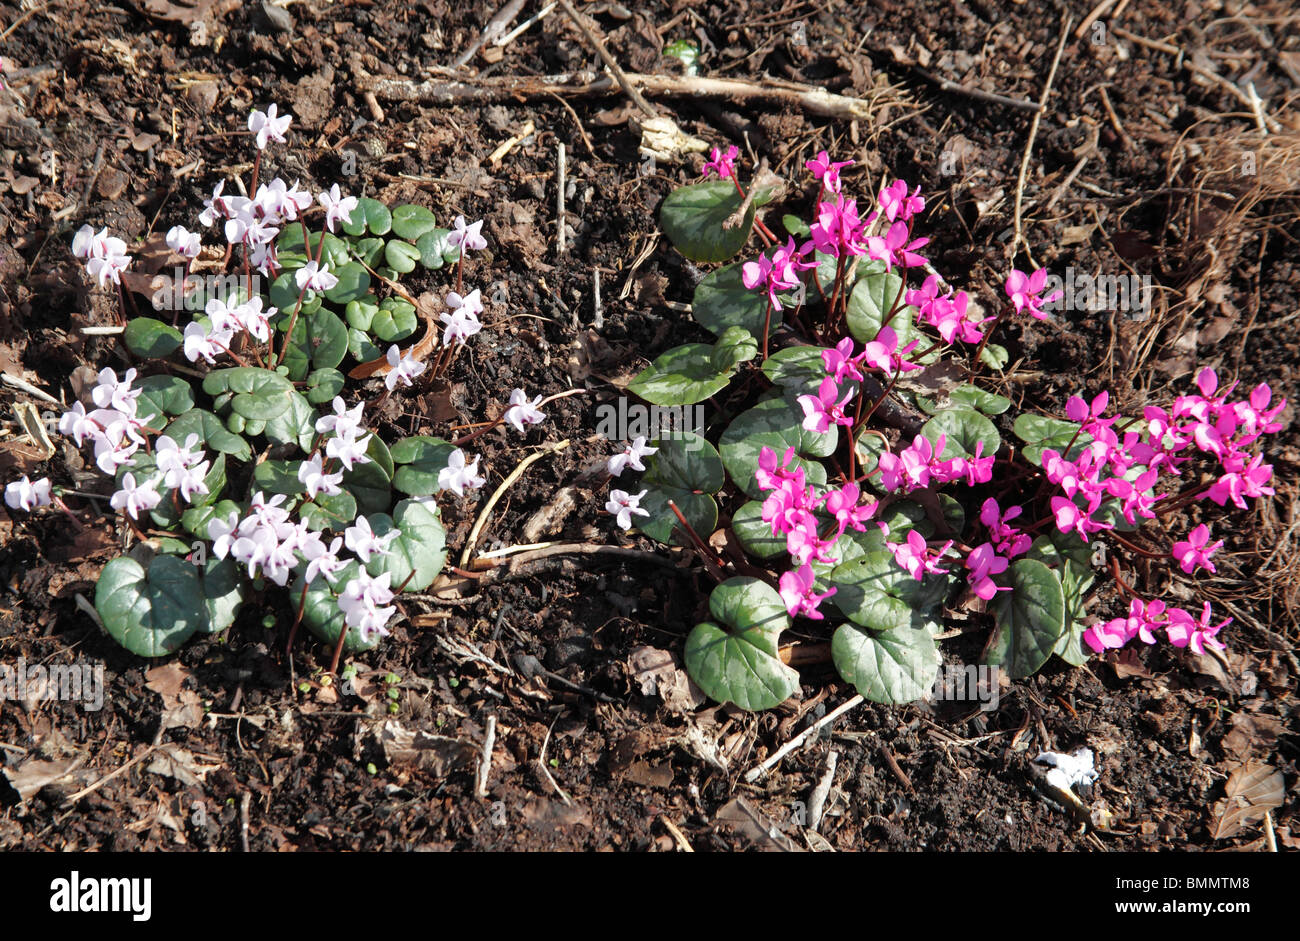 Cyclamen coum variants in flower - Stock Image